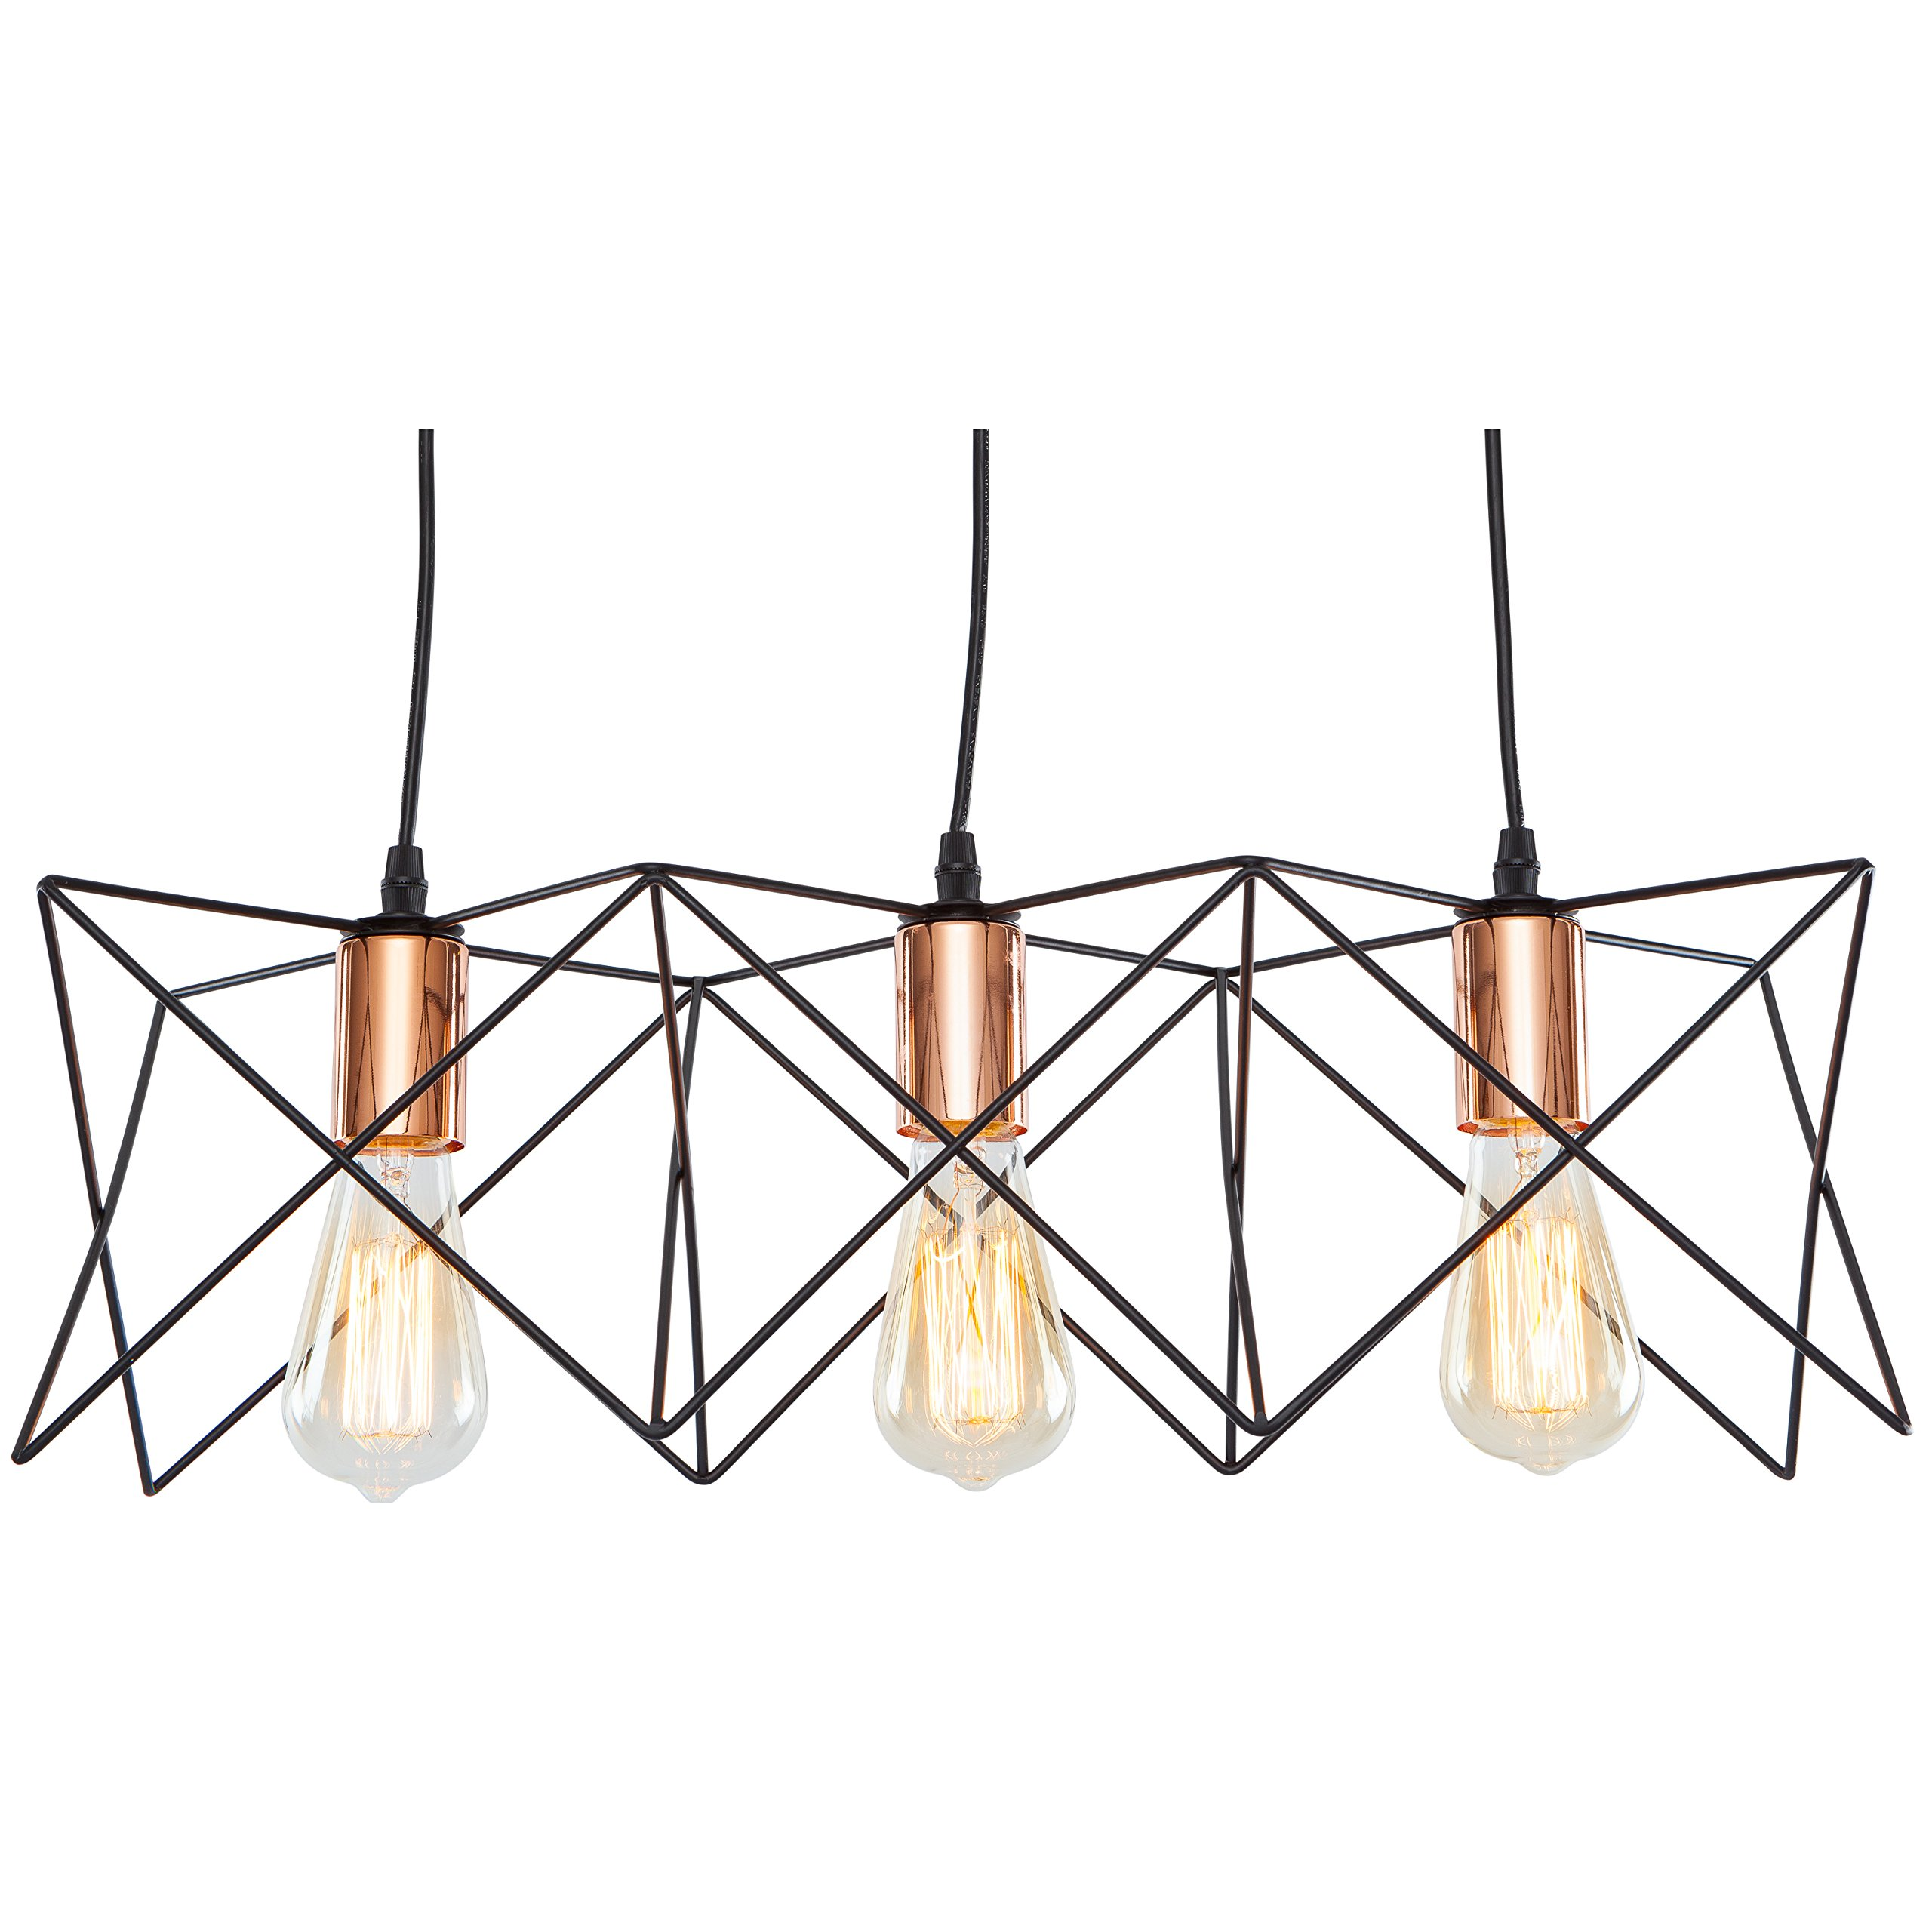 Get Ations Light Society Crampton 3 Geometric Chandelier Pendant Matte Black Shade With Copper Finish